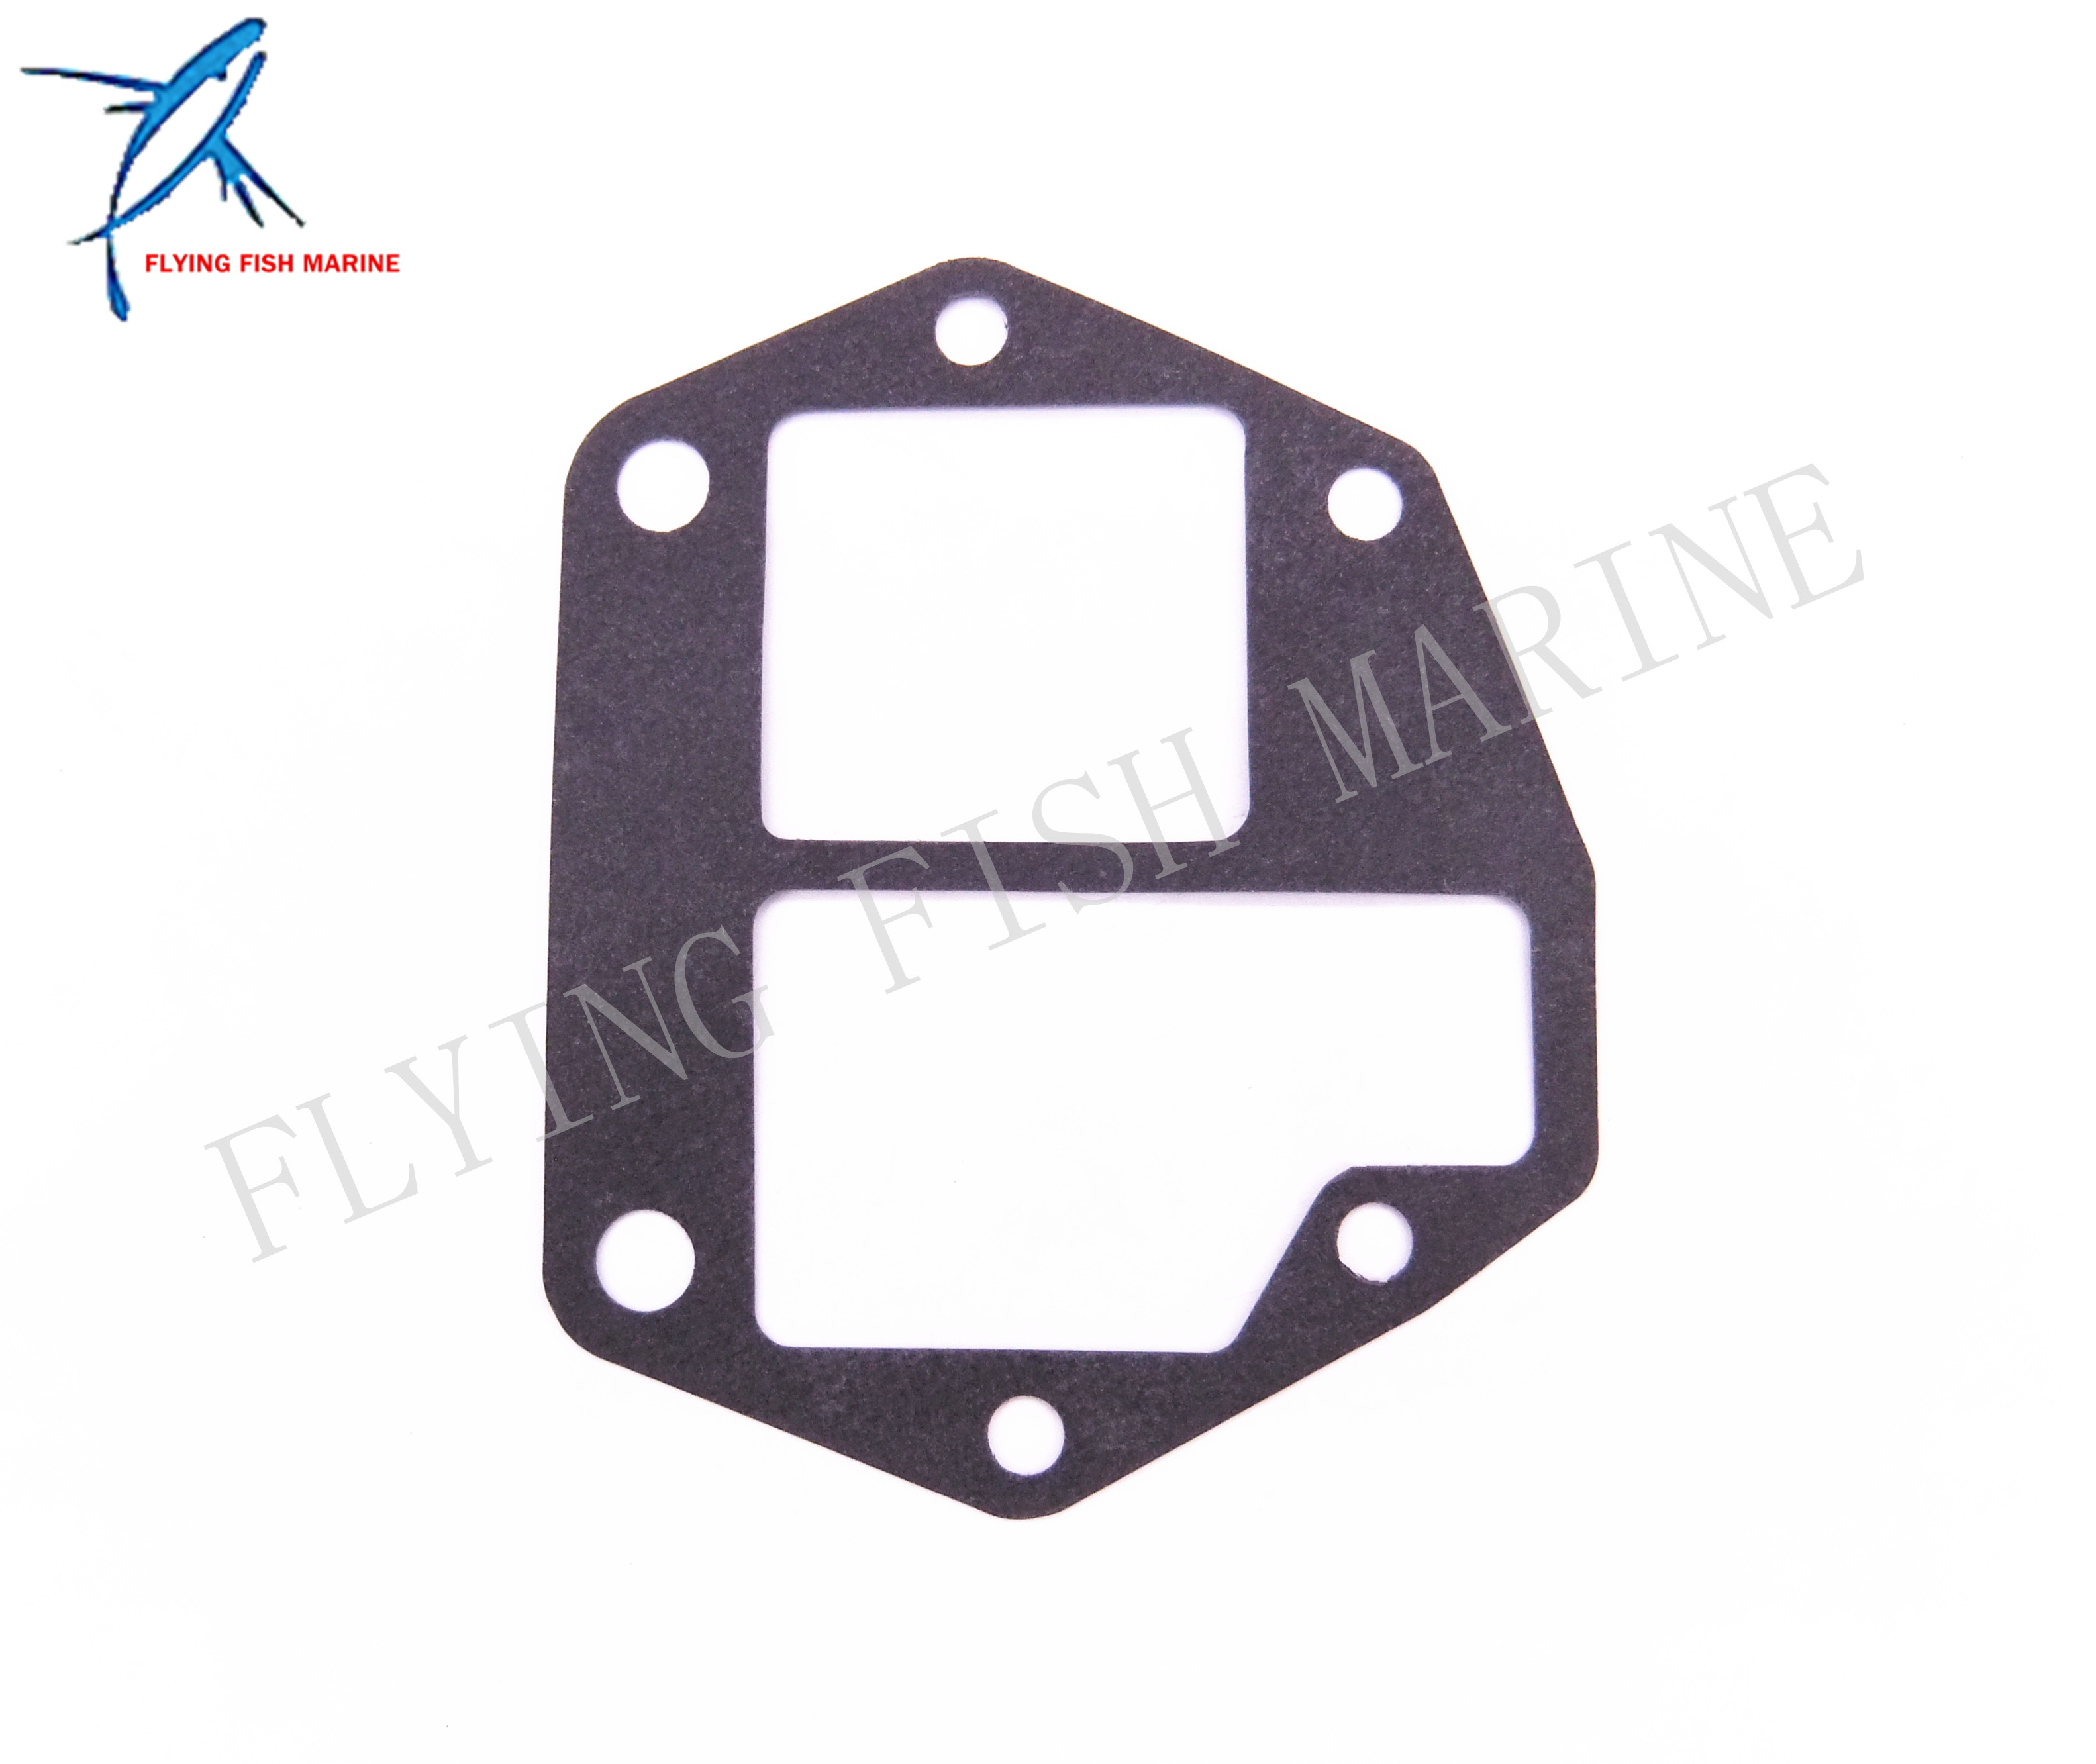 Boat Motor 3B2-02104-0 3B202-1040M Inlet Manifold Inner Gasket for Tohatsu Nissan 2-Stroke 6HP 8HP 9.8HP Outboard Engine